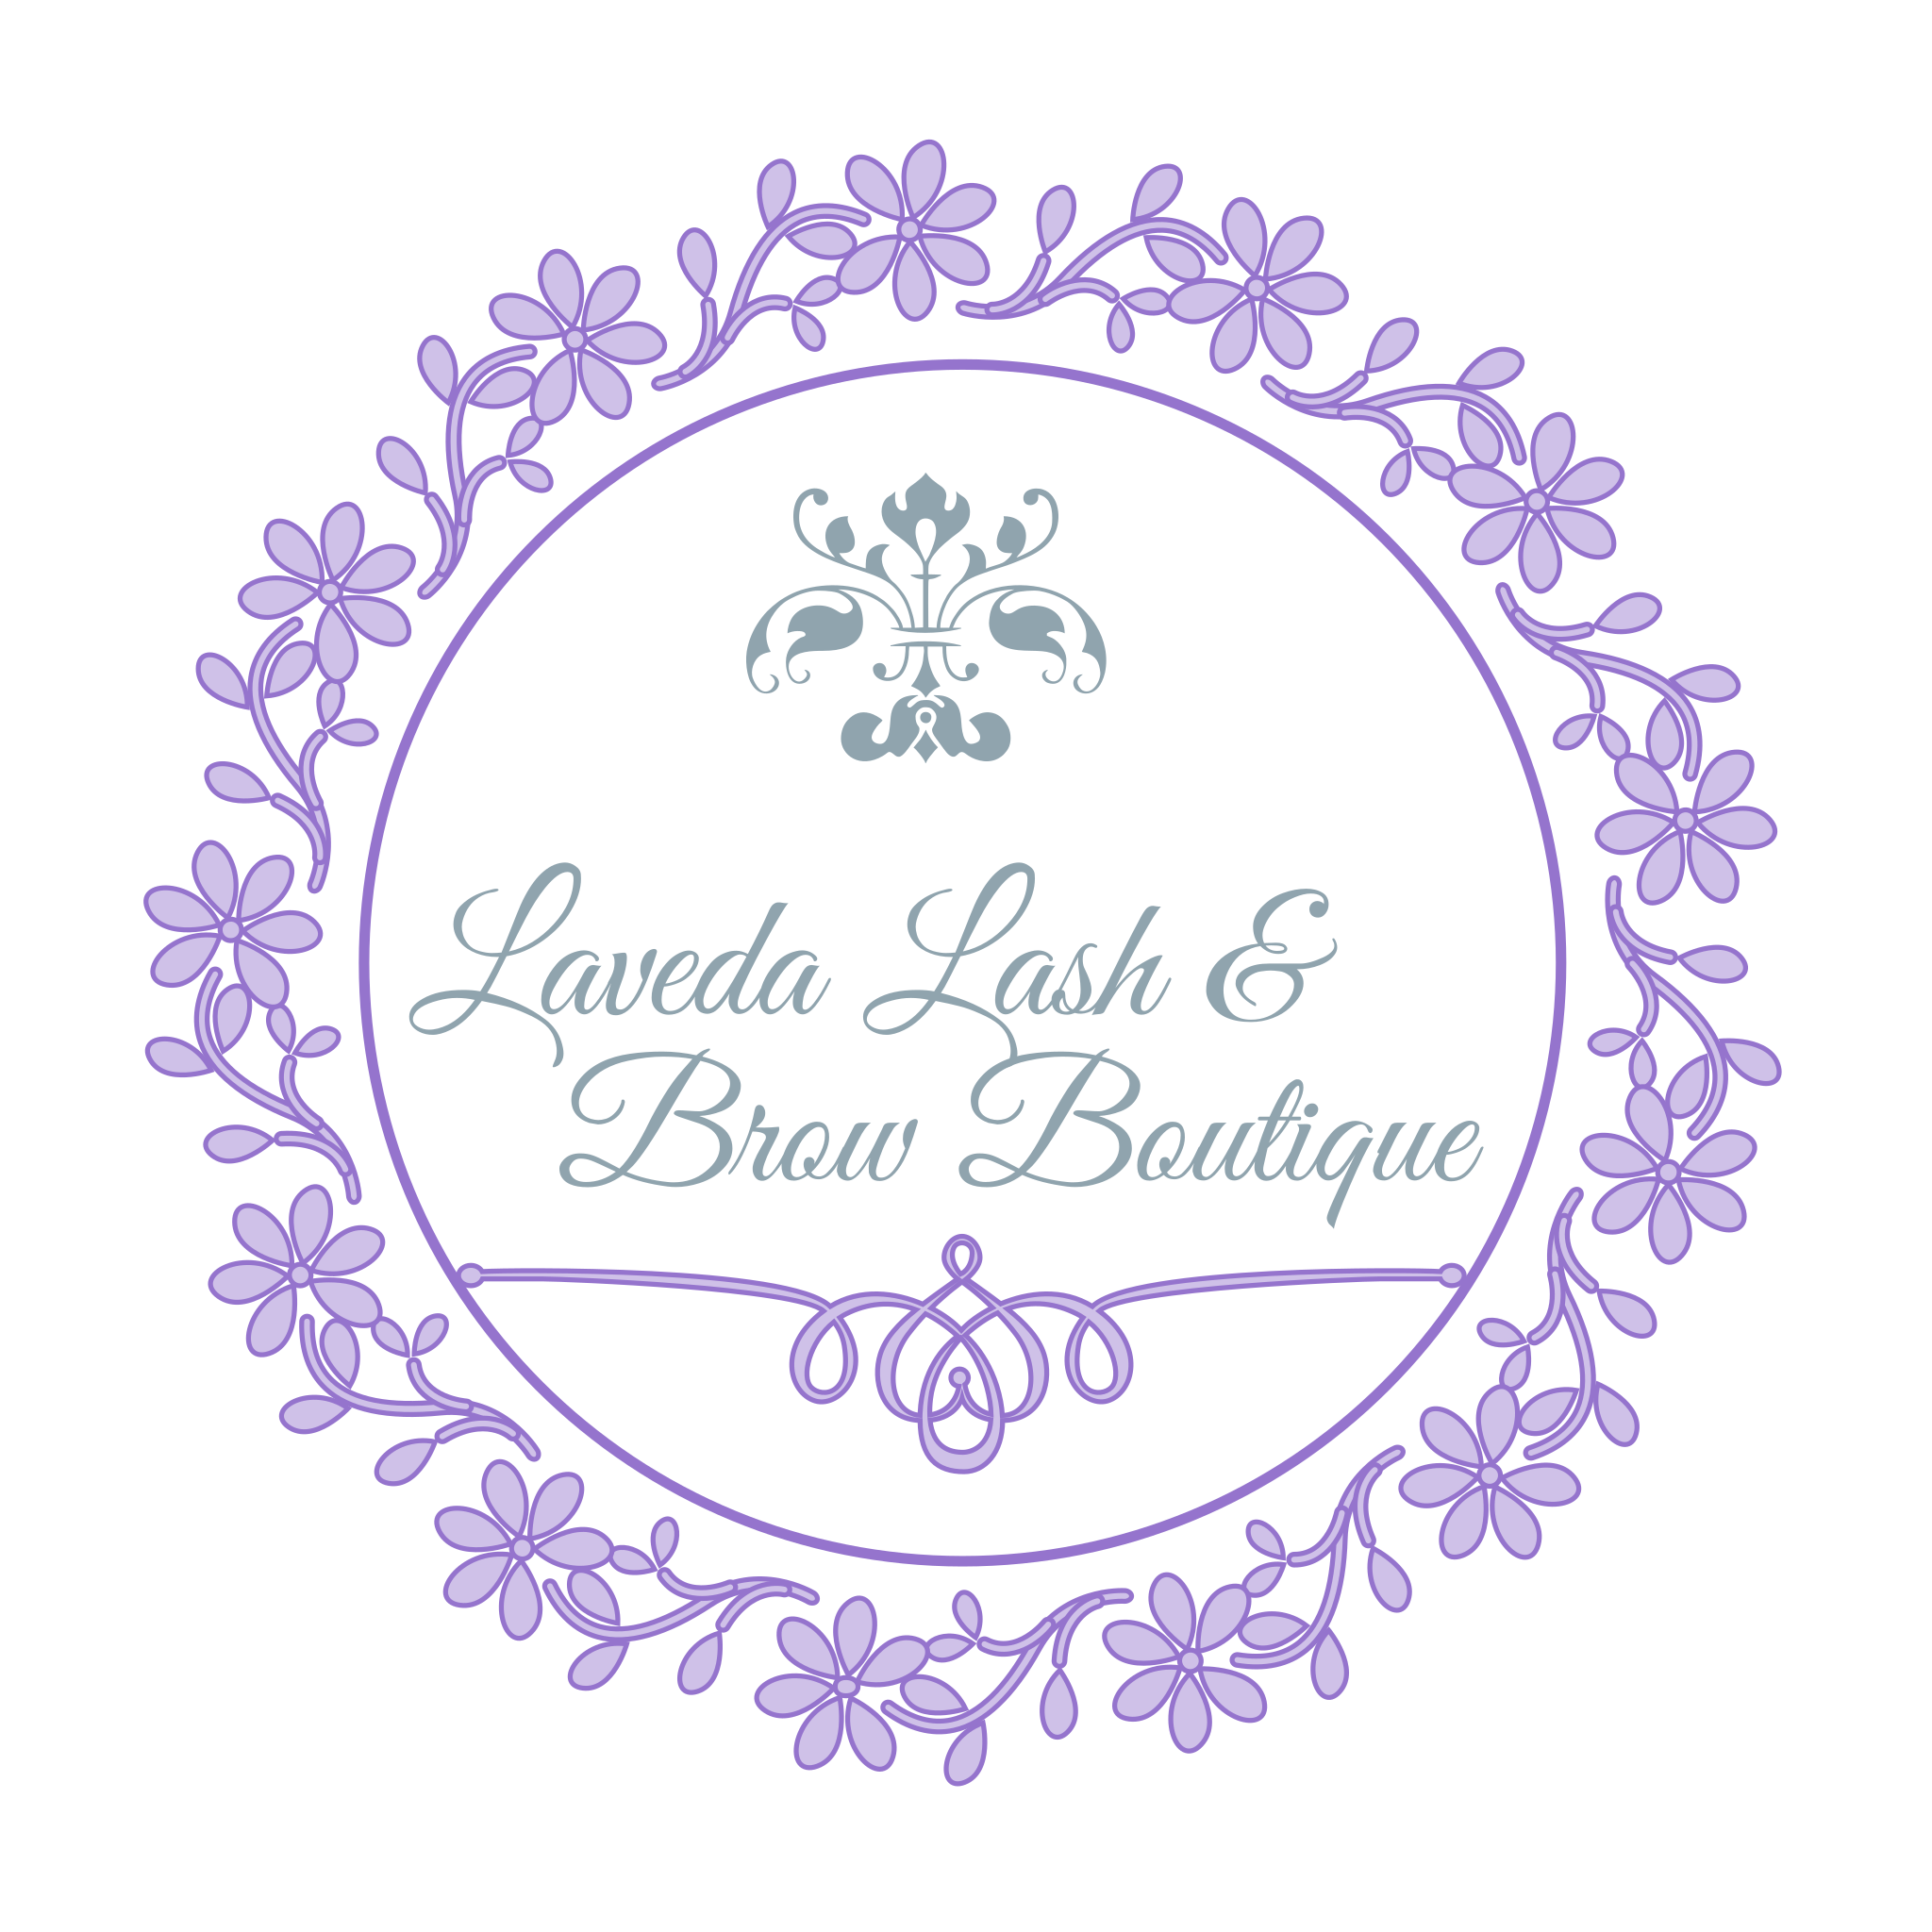 Laveda Lash & Brow Boutique